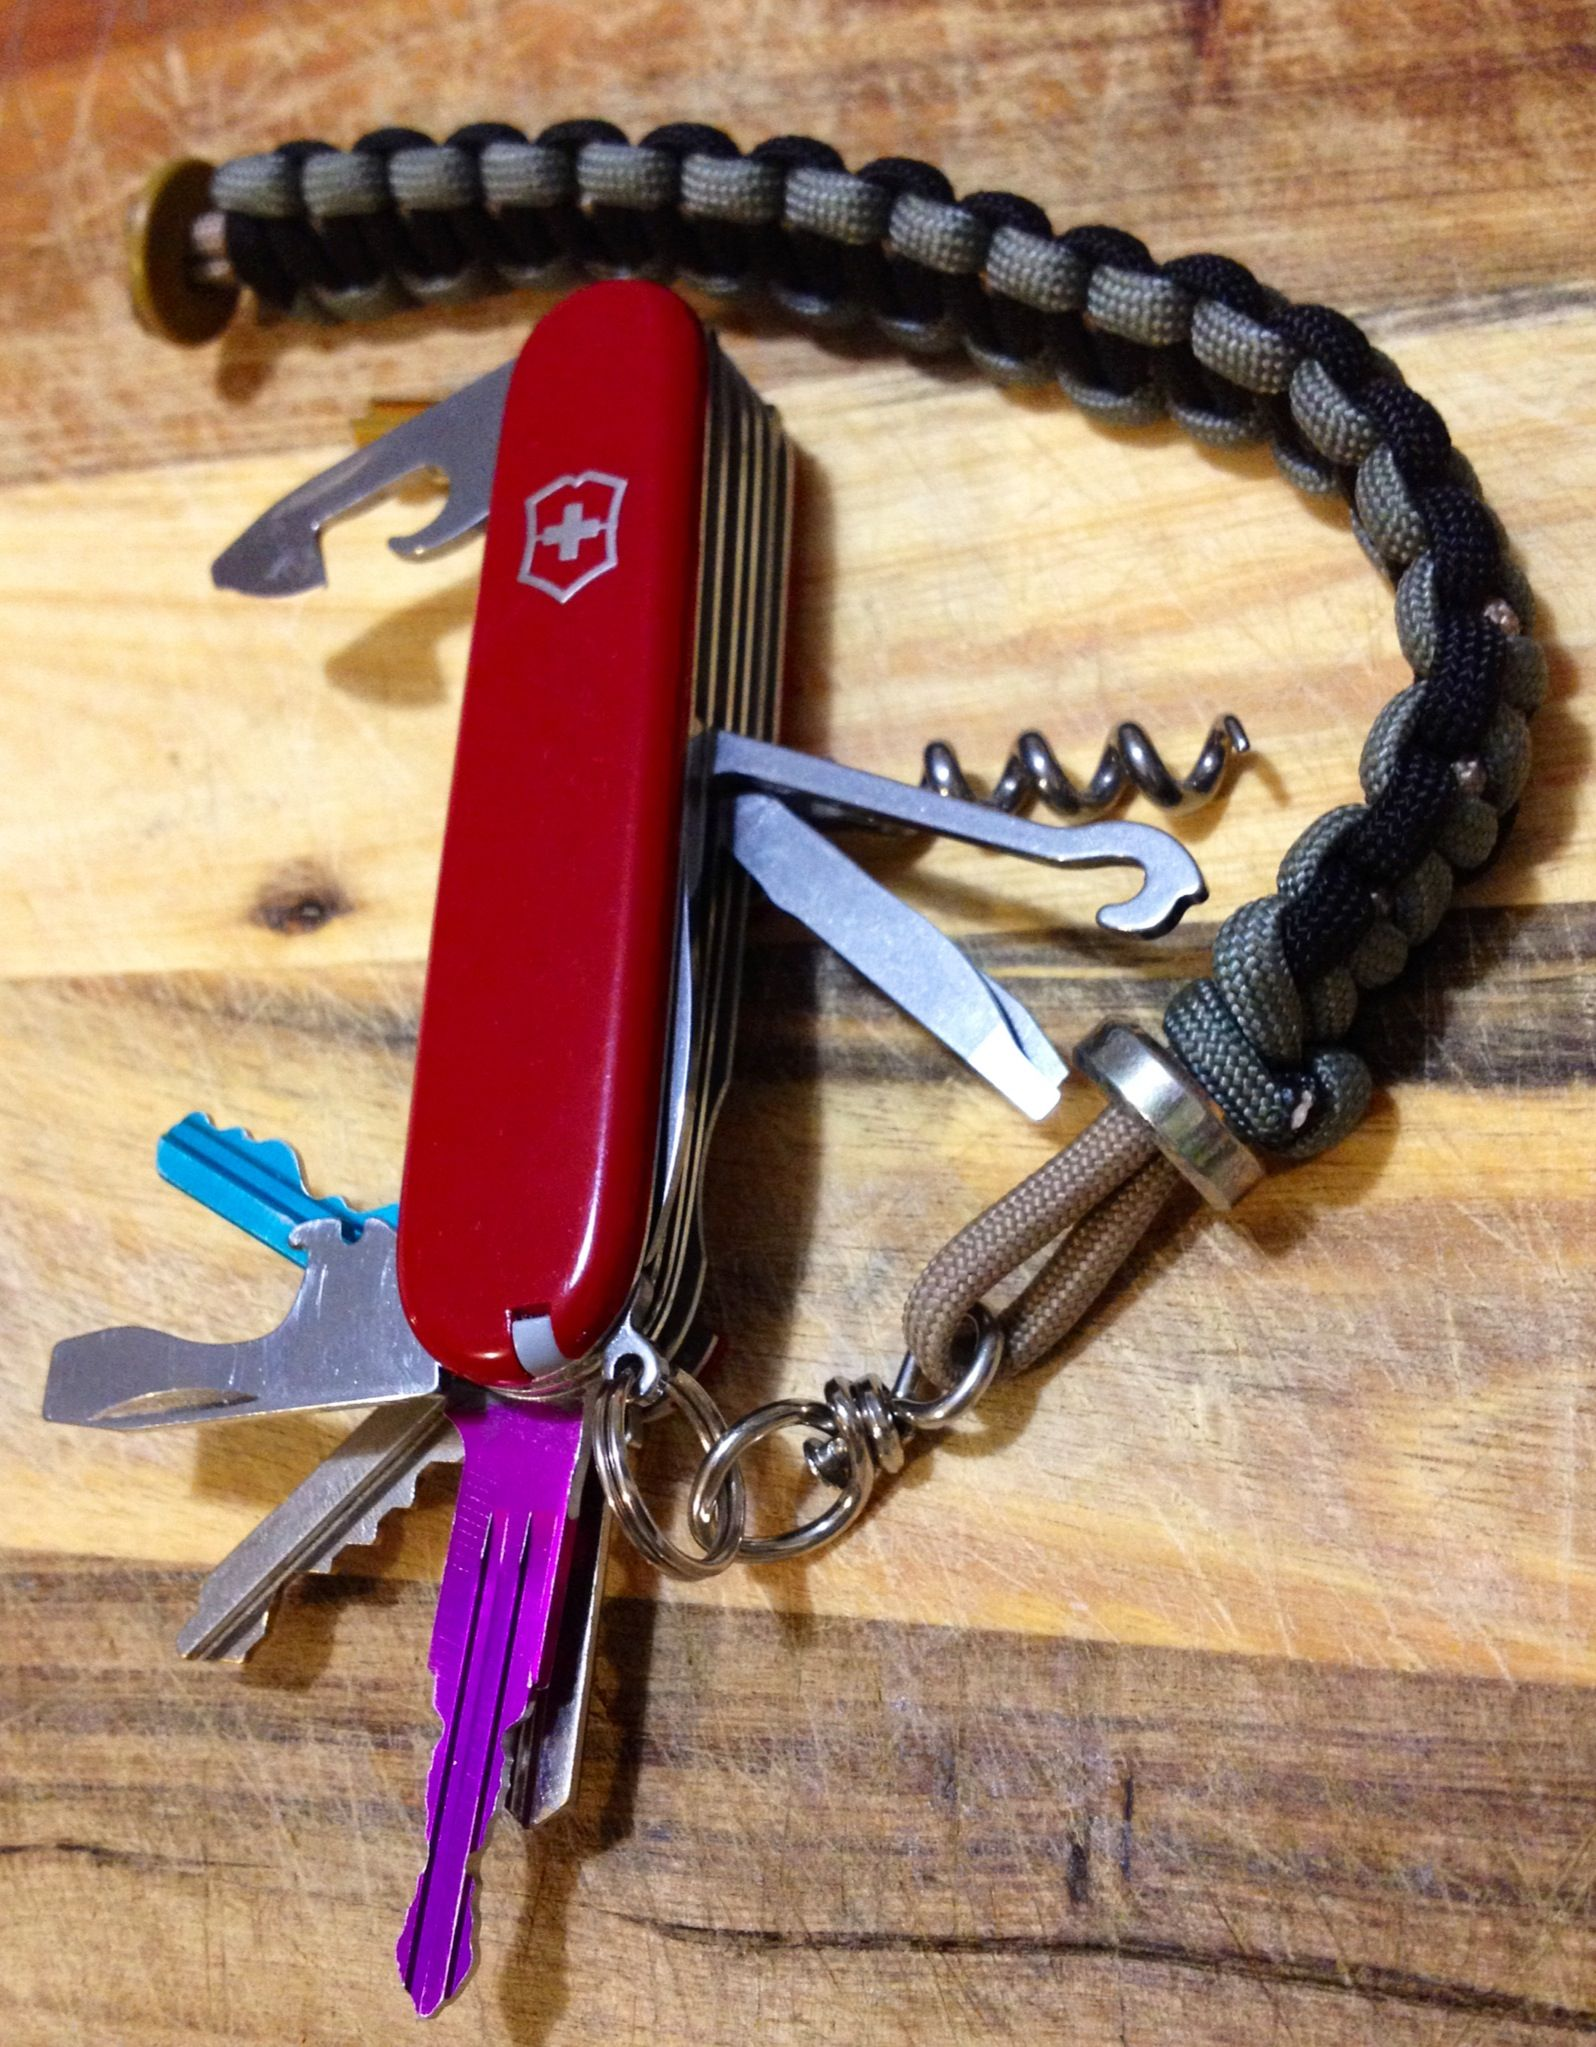 Victorinox Swiss Army Knife Modification With Keys And